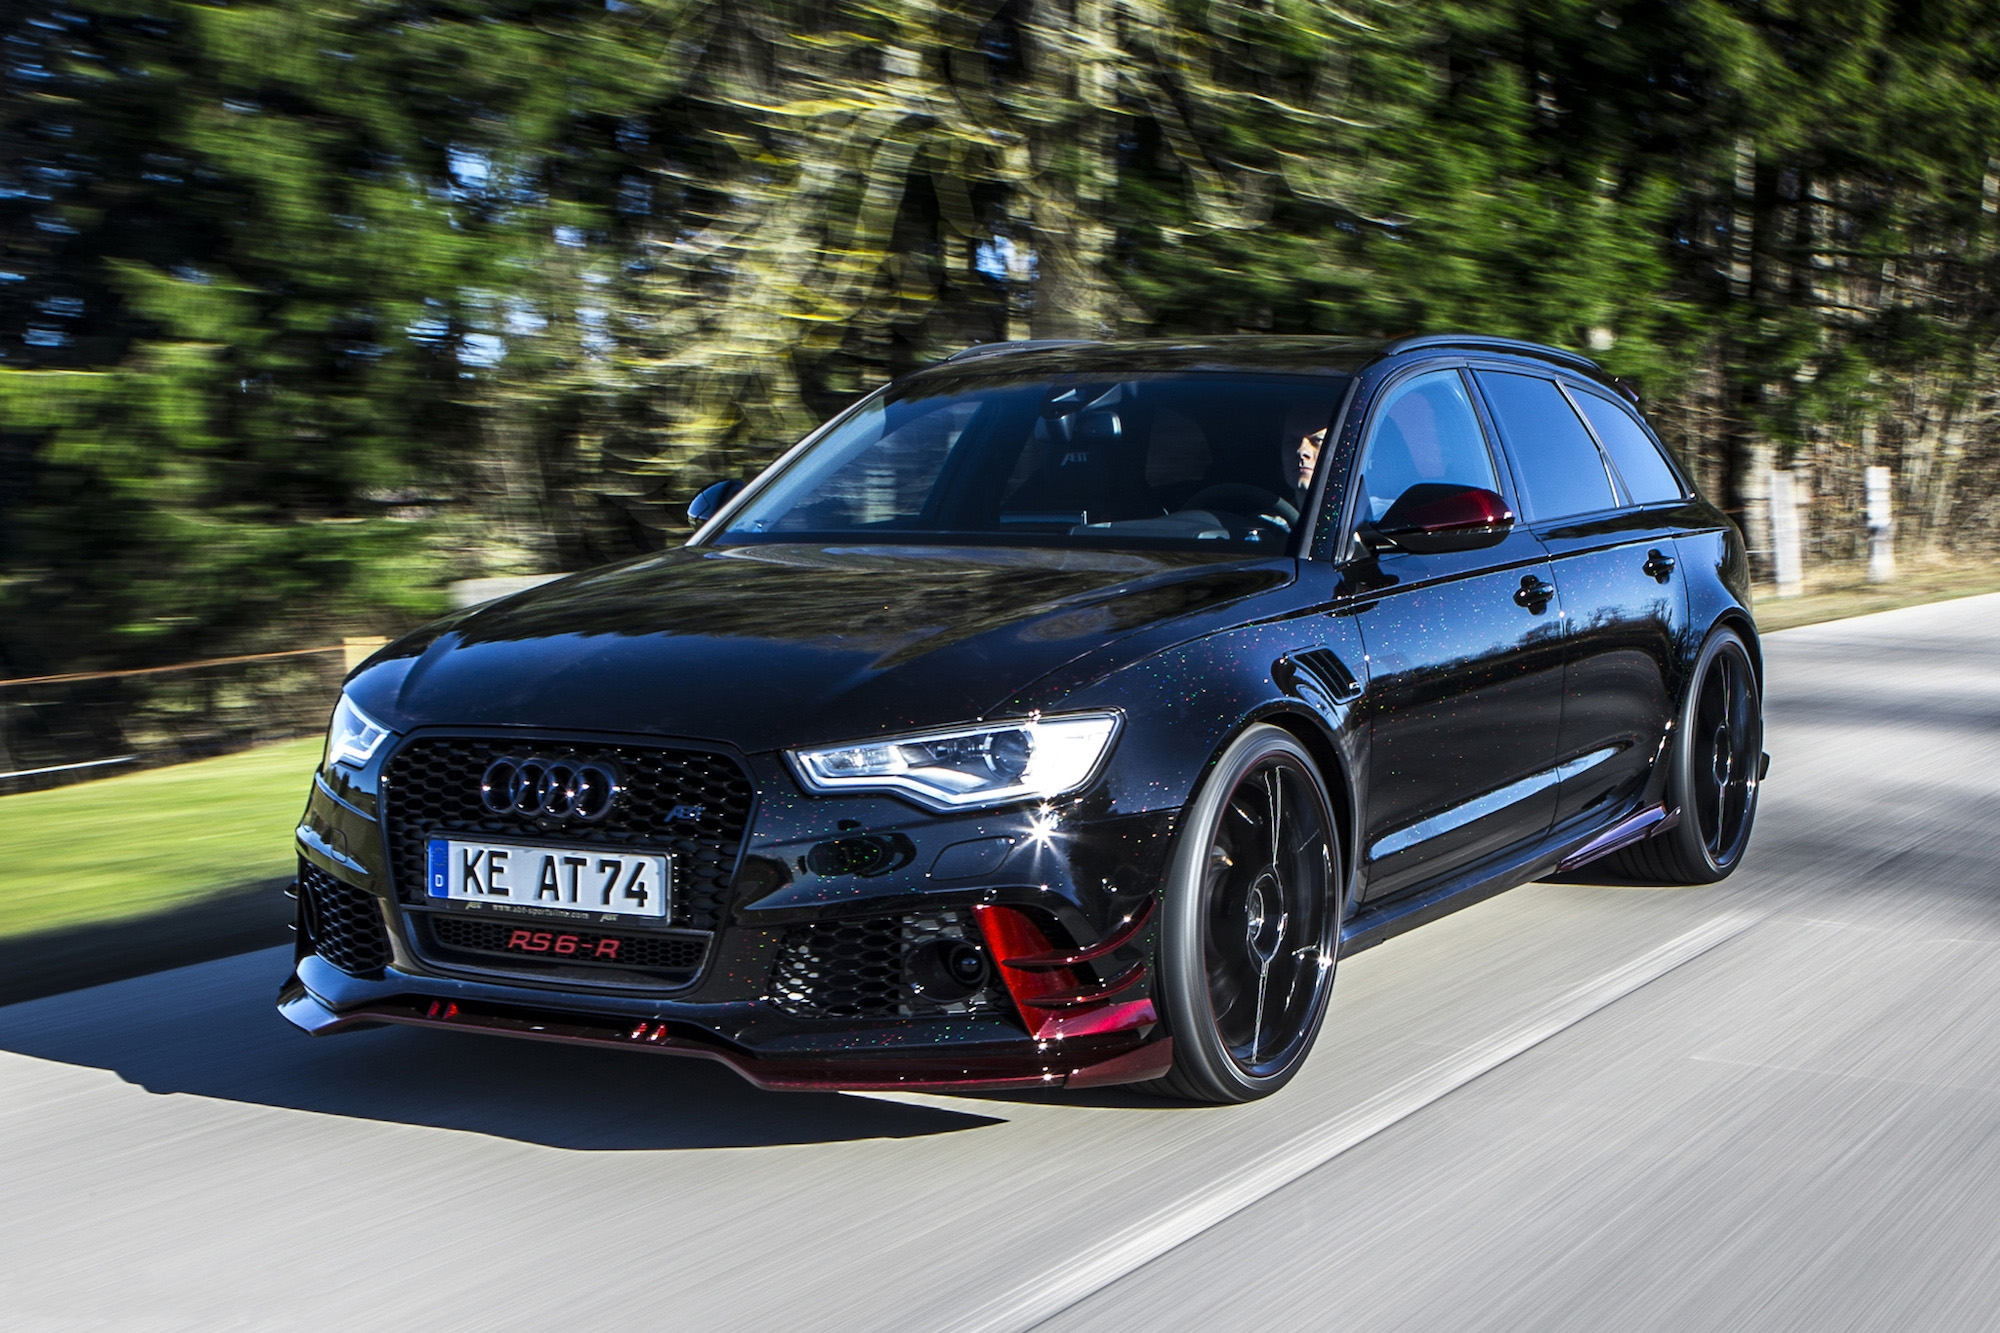 Audi Rs6 Car Wallpapers Hd Audi Rs 6 R 255555 Hd